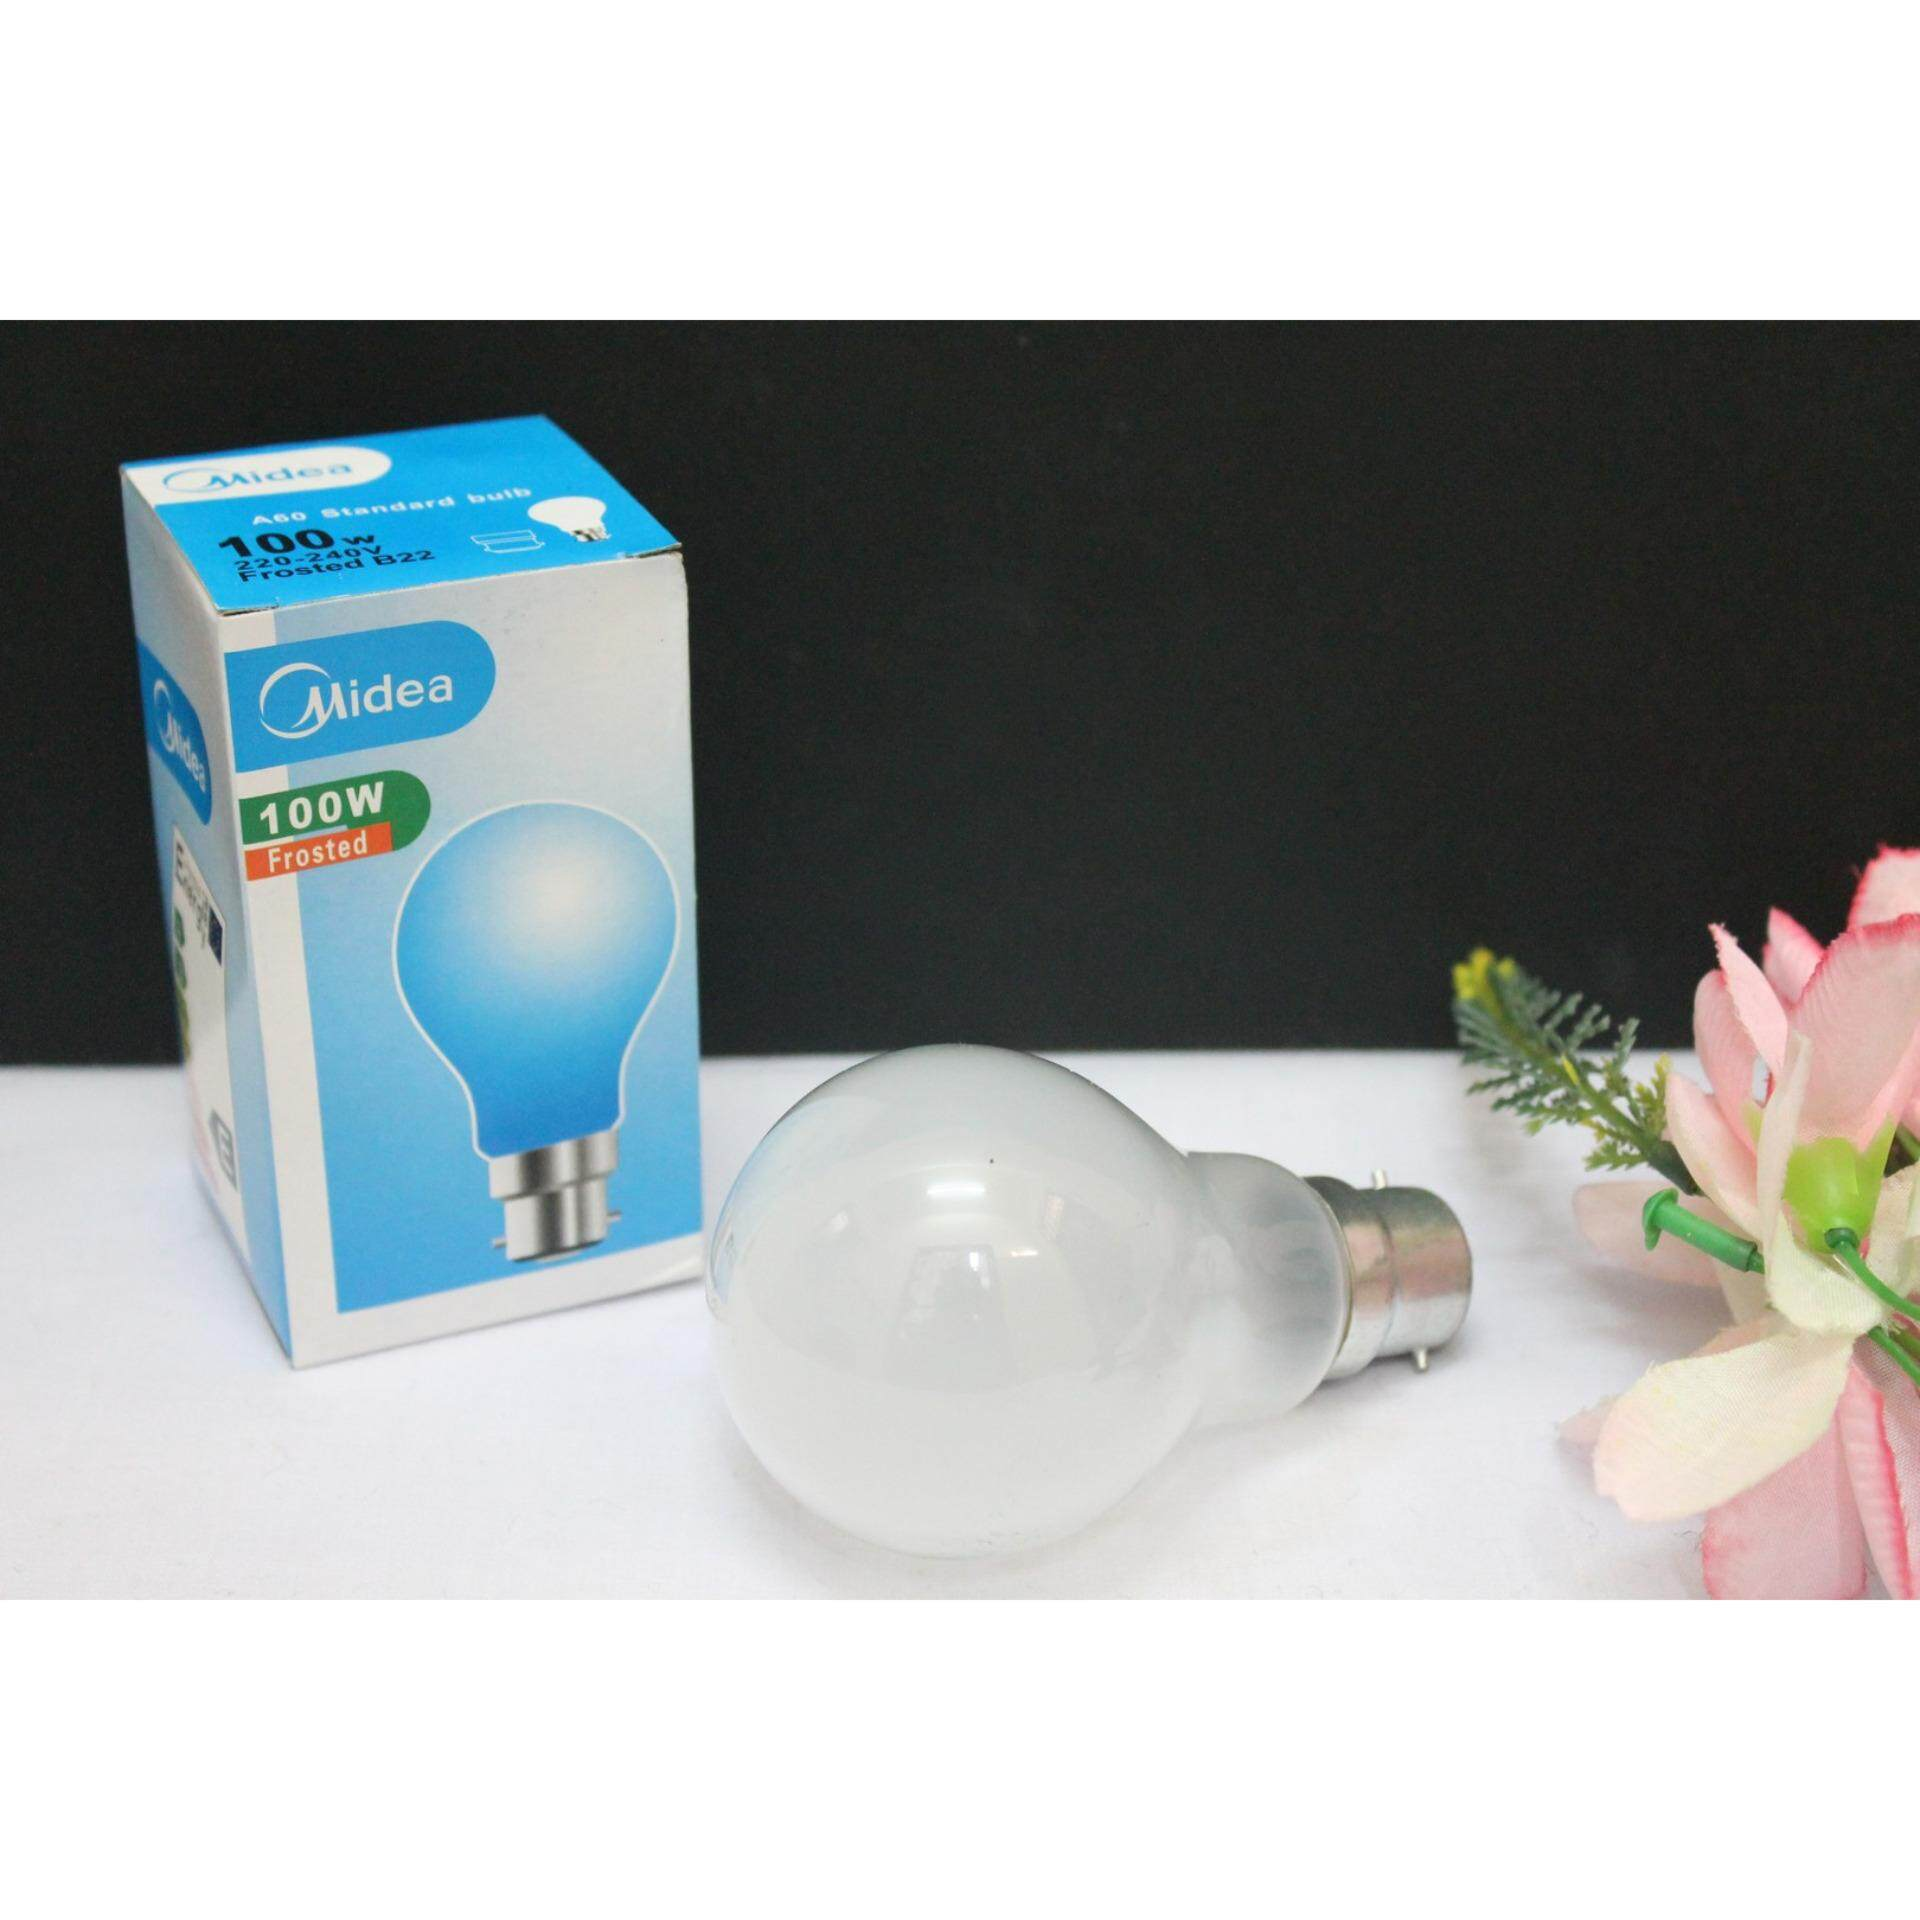 1pc Midea 100w 220-240V Frosted B22 Standard Bulb